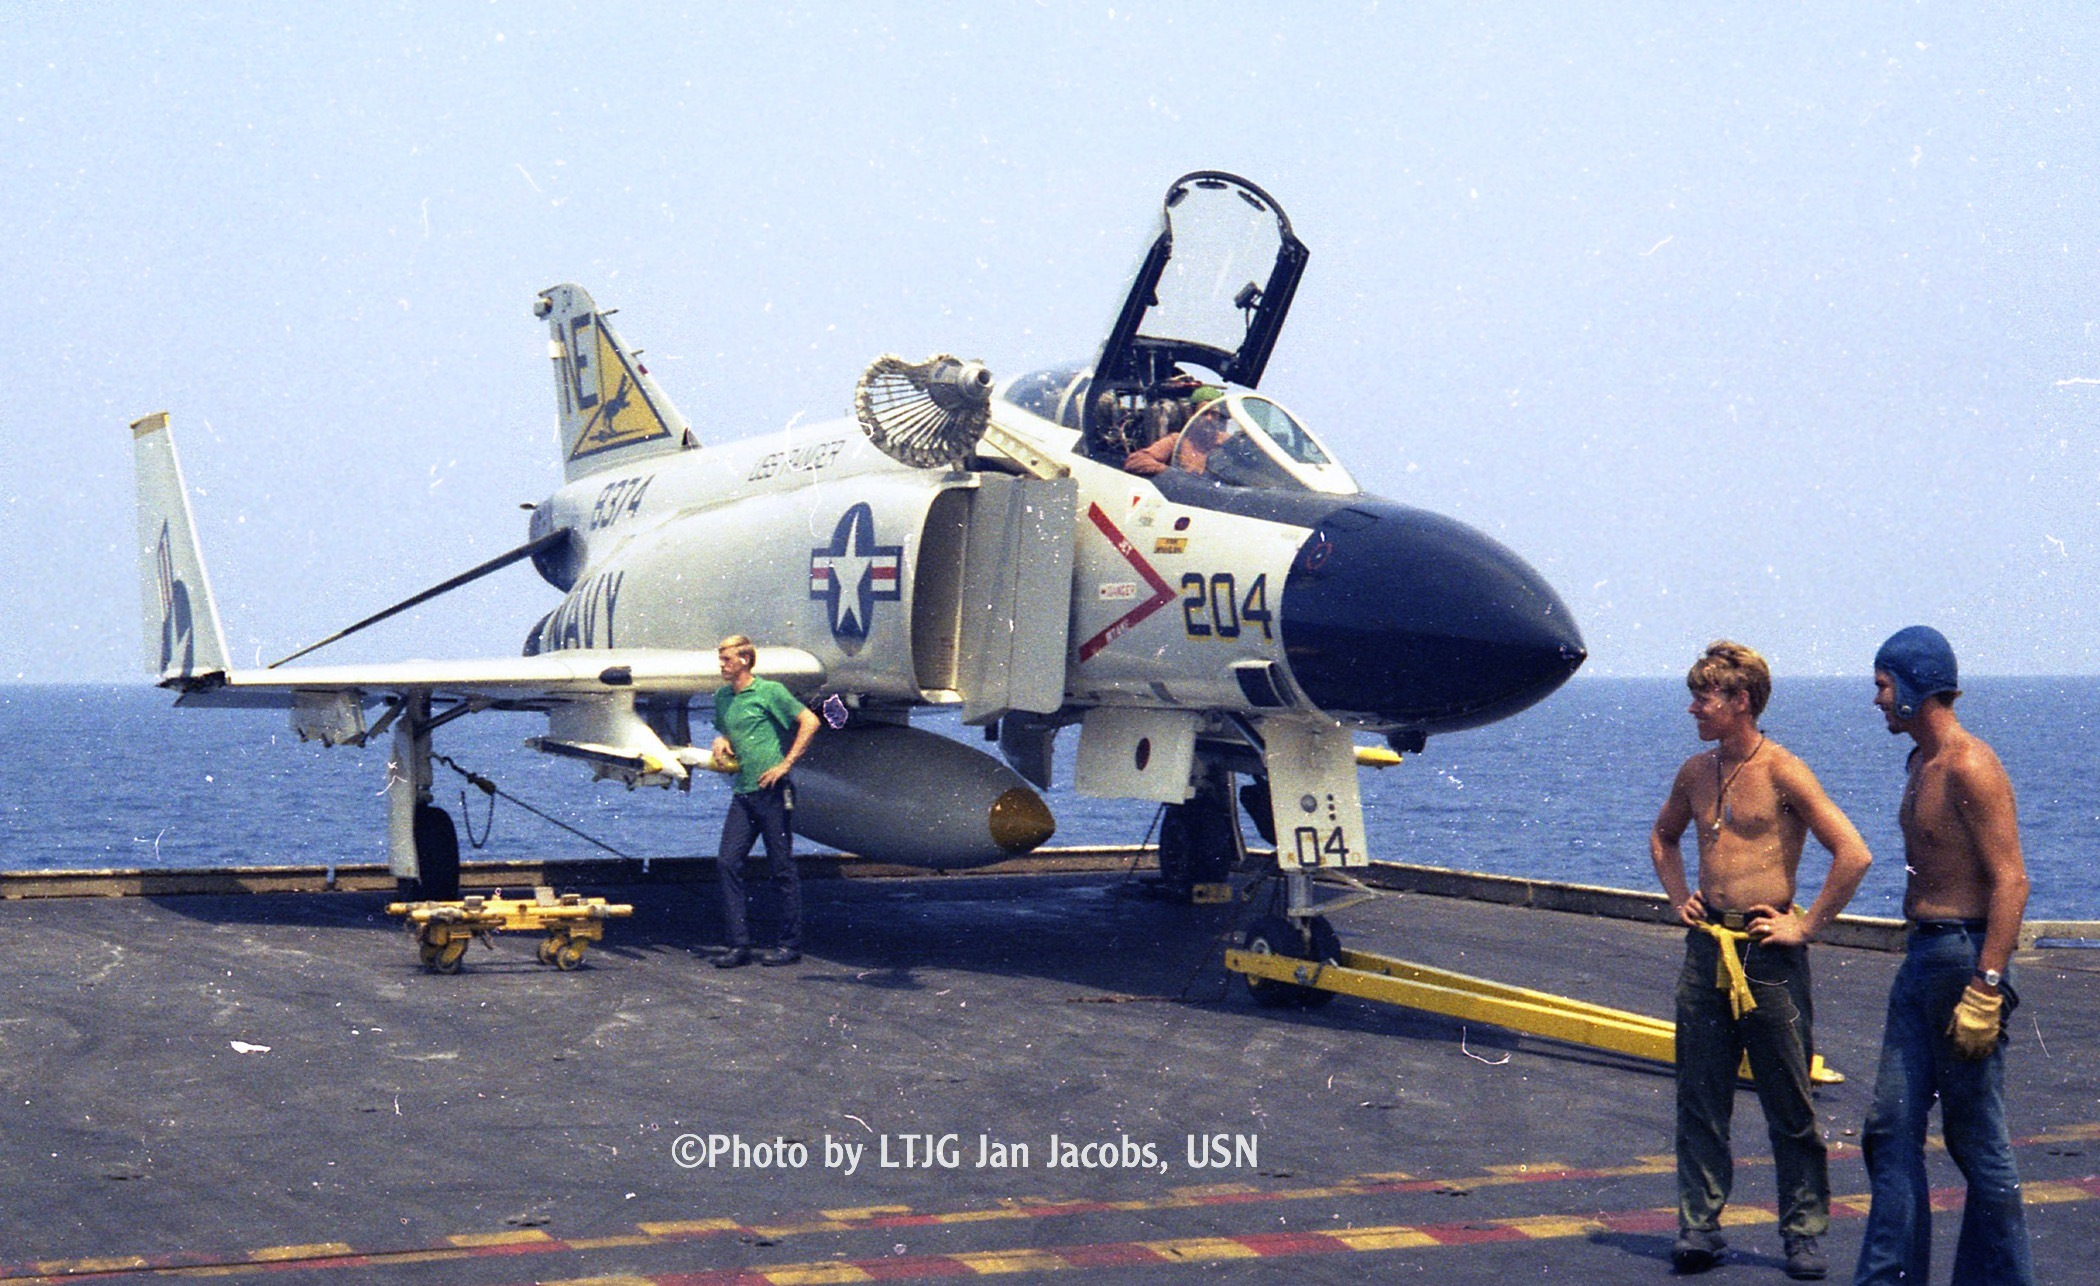 VF-21 refueling probe and basket